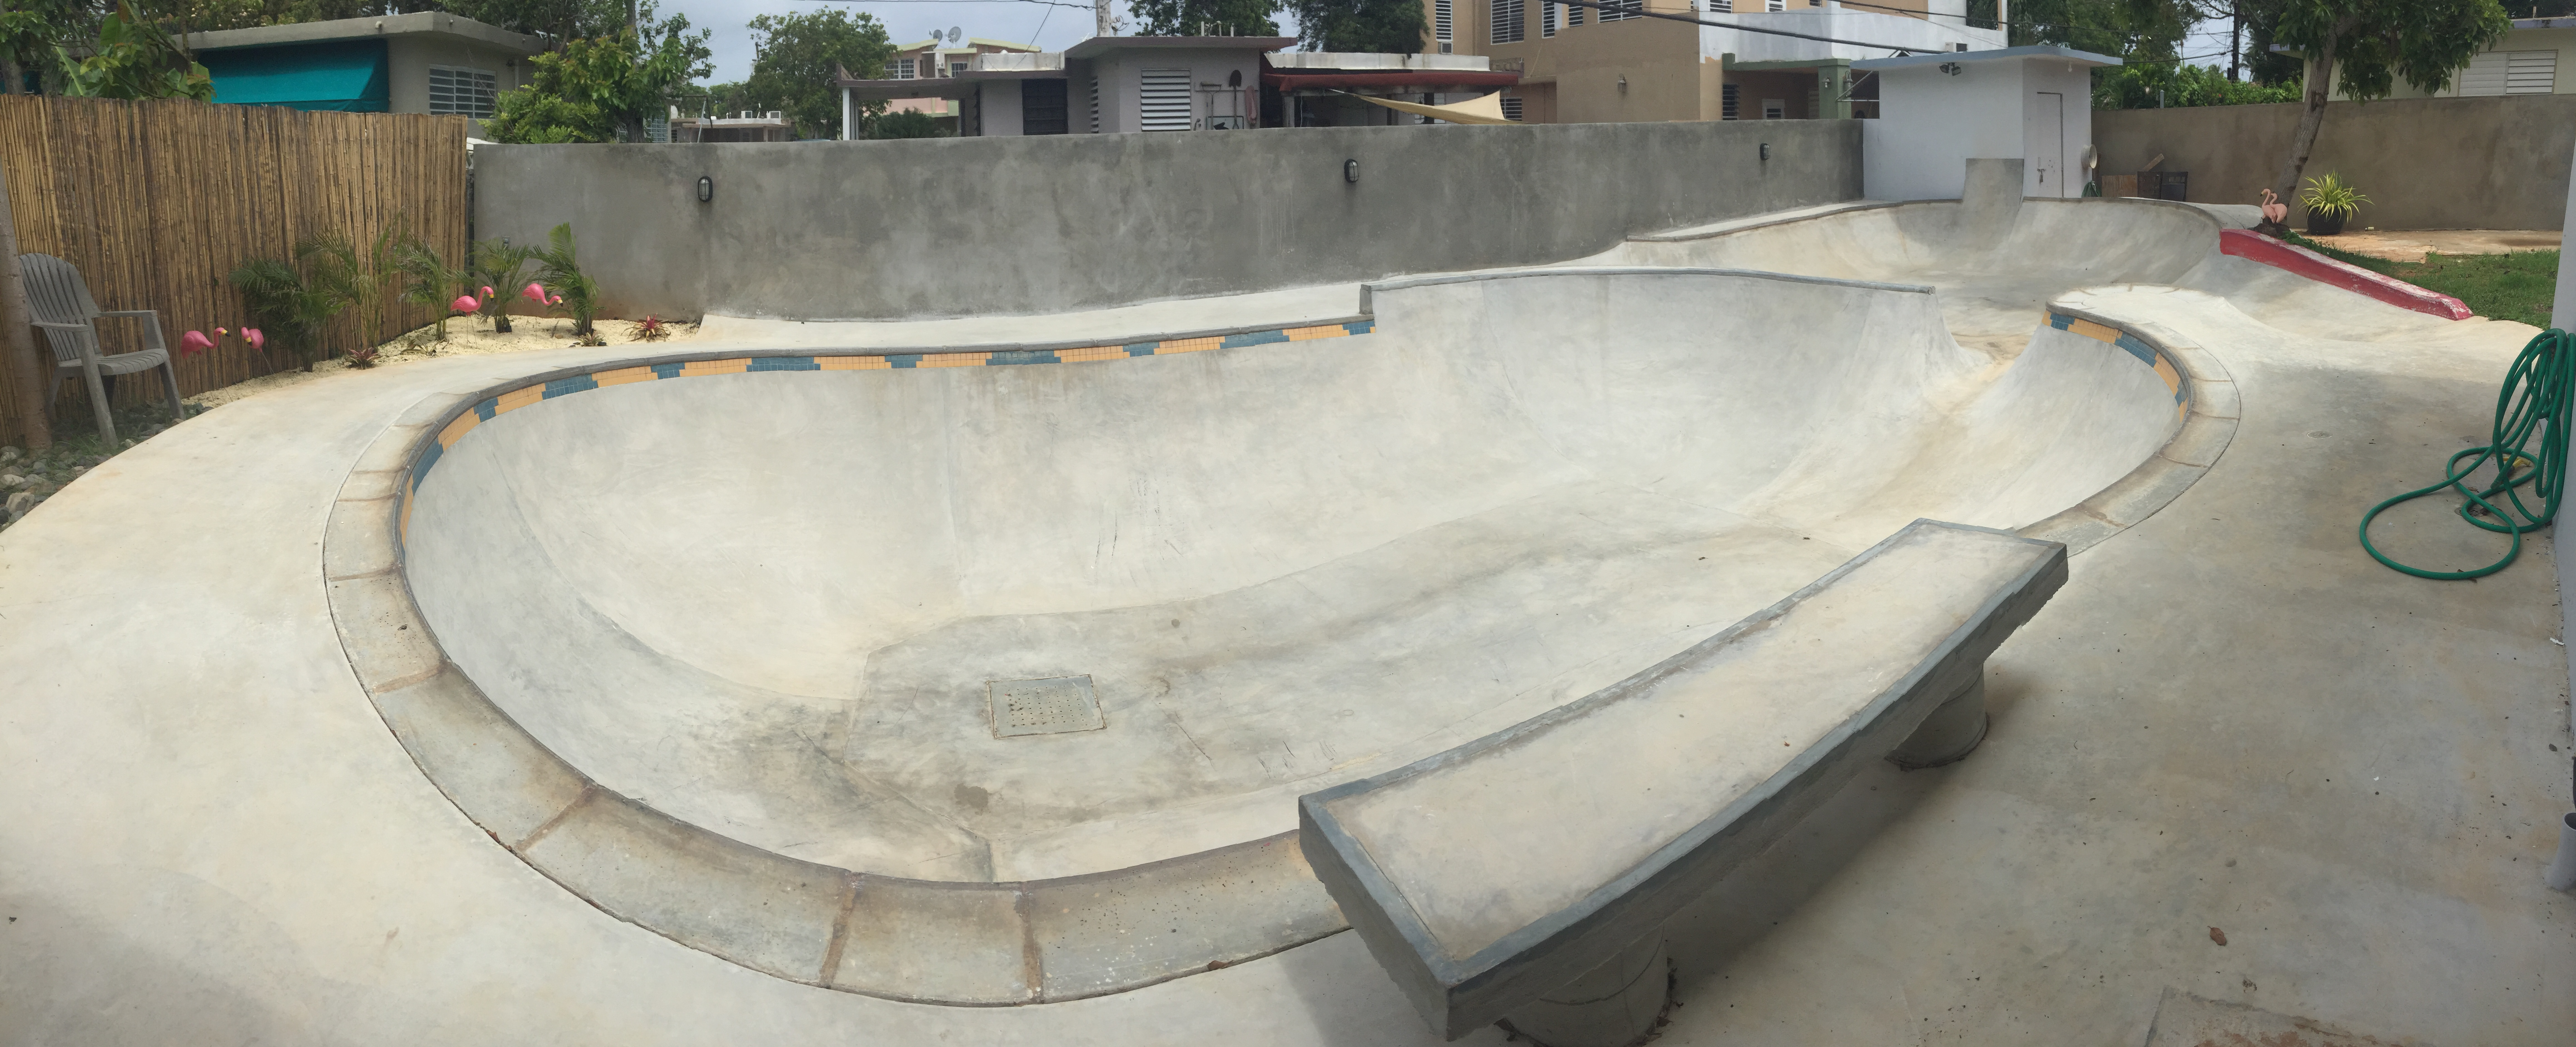 placed to ride u2013 skateparks r us